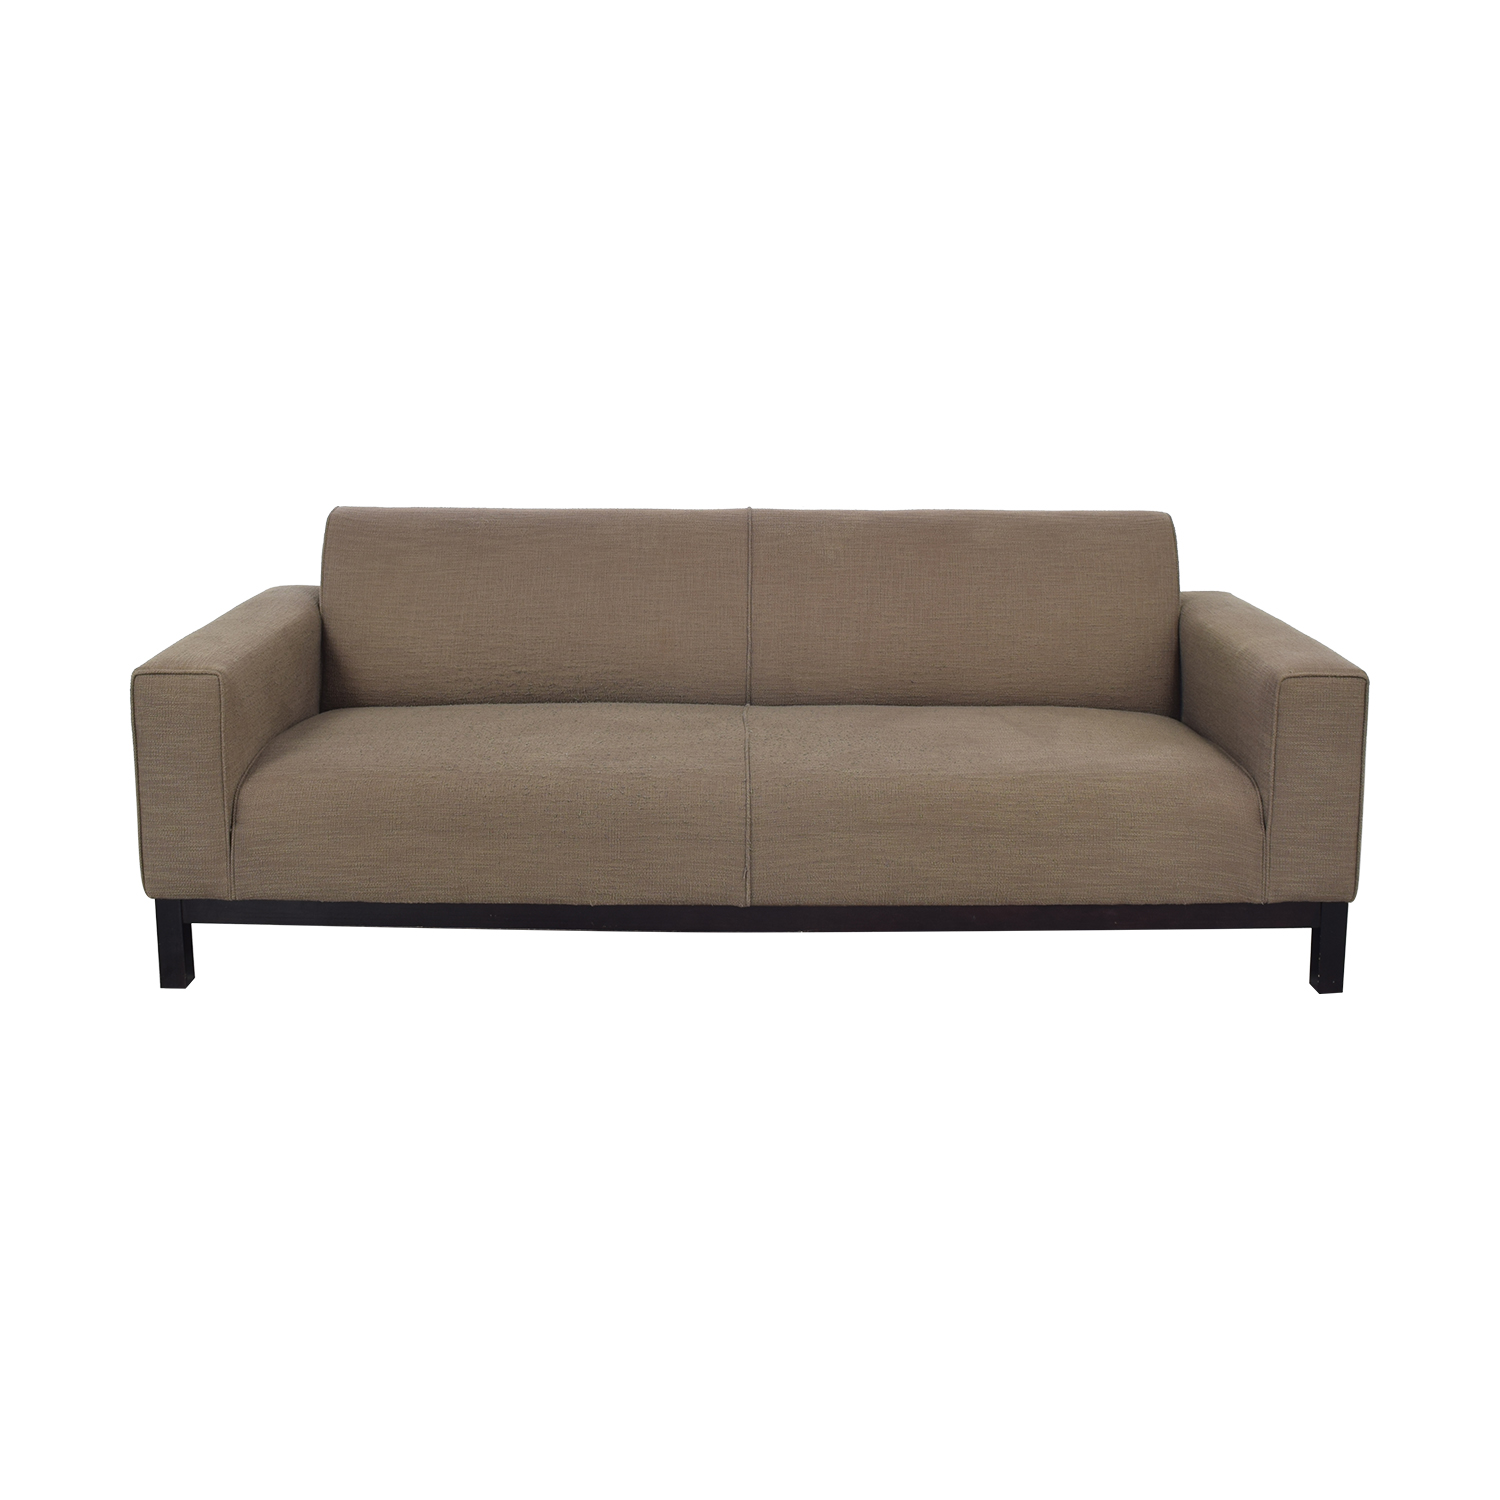 Crate & Barrel Crate & Barrel Tight Back Sofa second hand